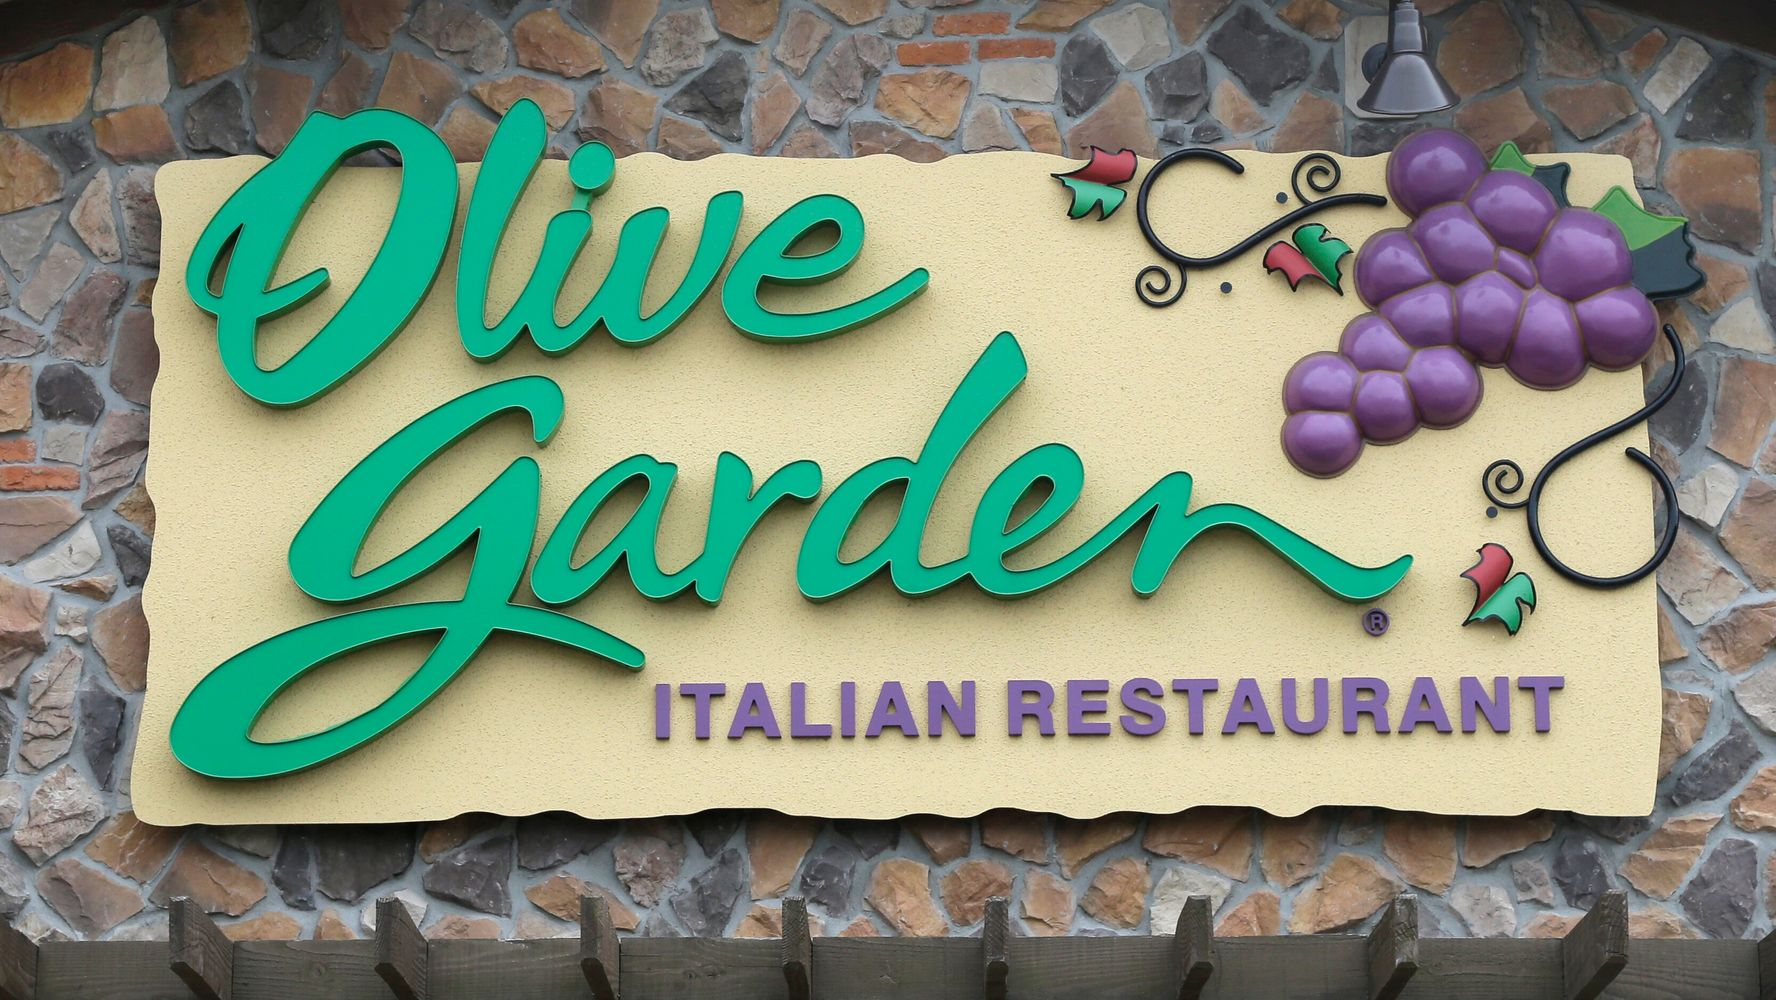 Olive Garden Manager Fired After Complying With Request For Non